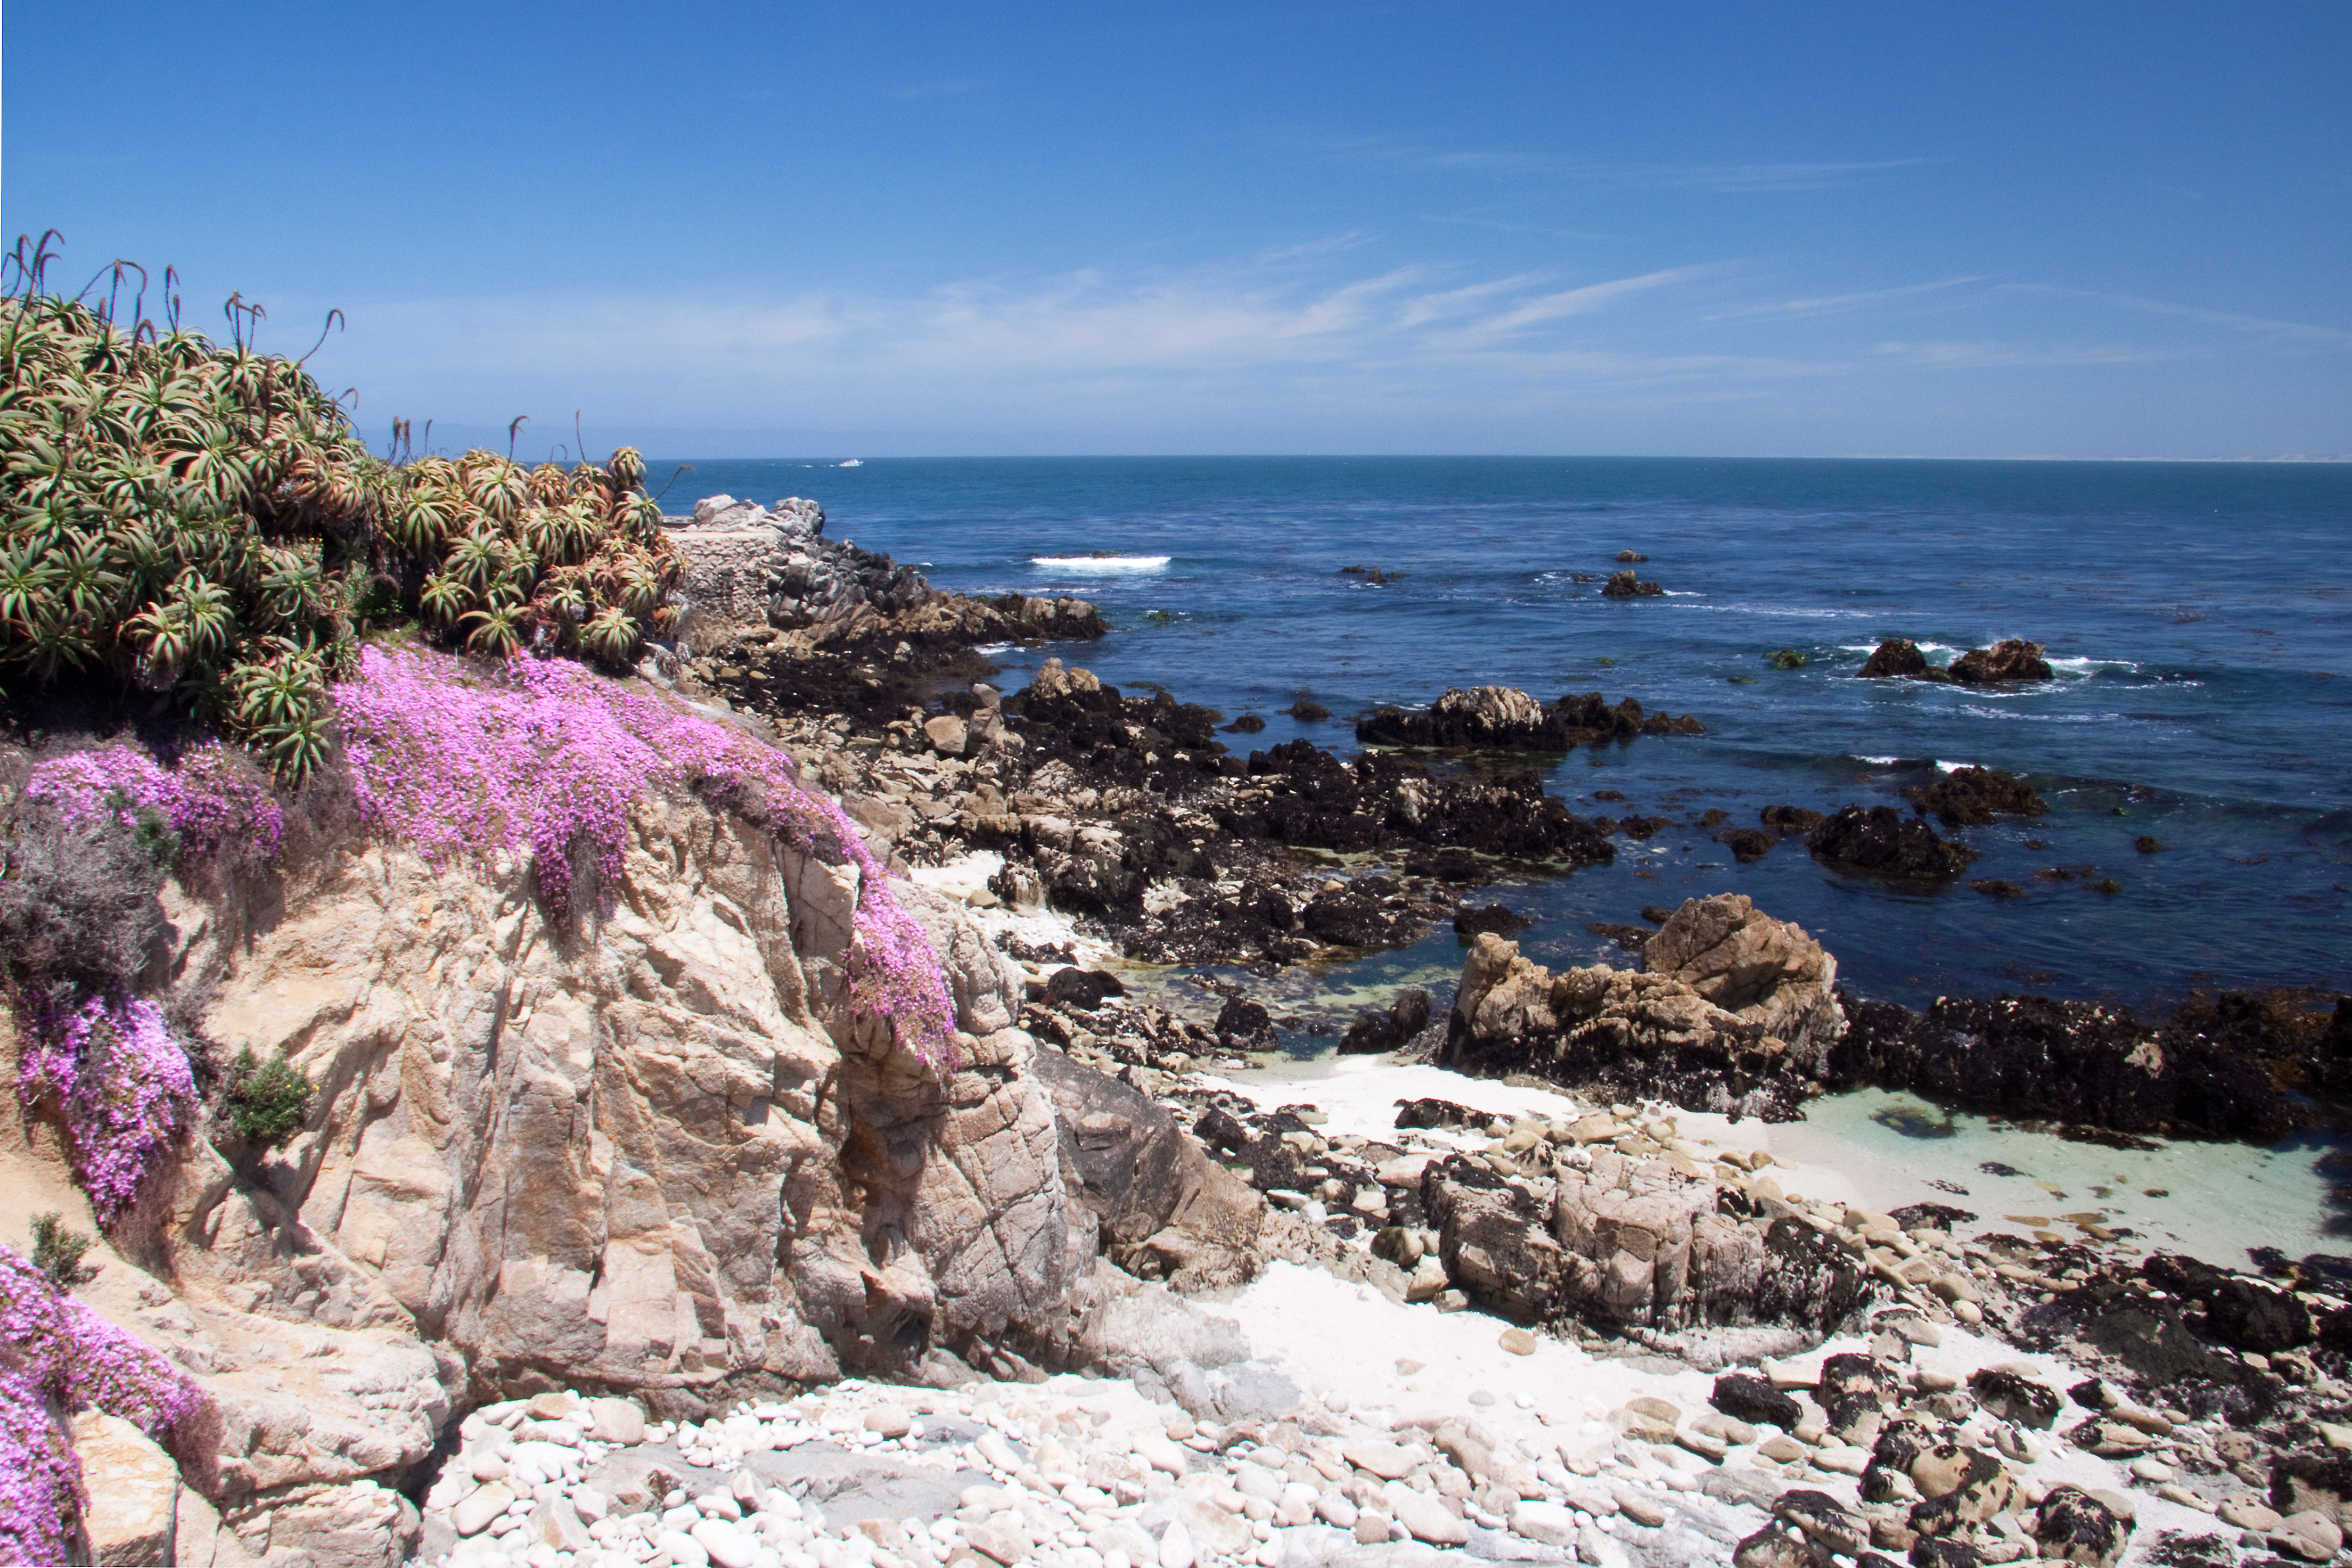 Pink carpet trailing ice plants along coast at monterey naturetime 2945 in monterey stunning pink flower carpet mightylinksfo Images